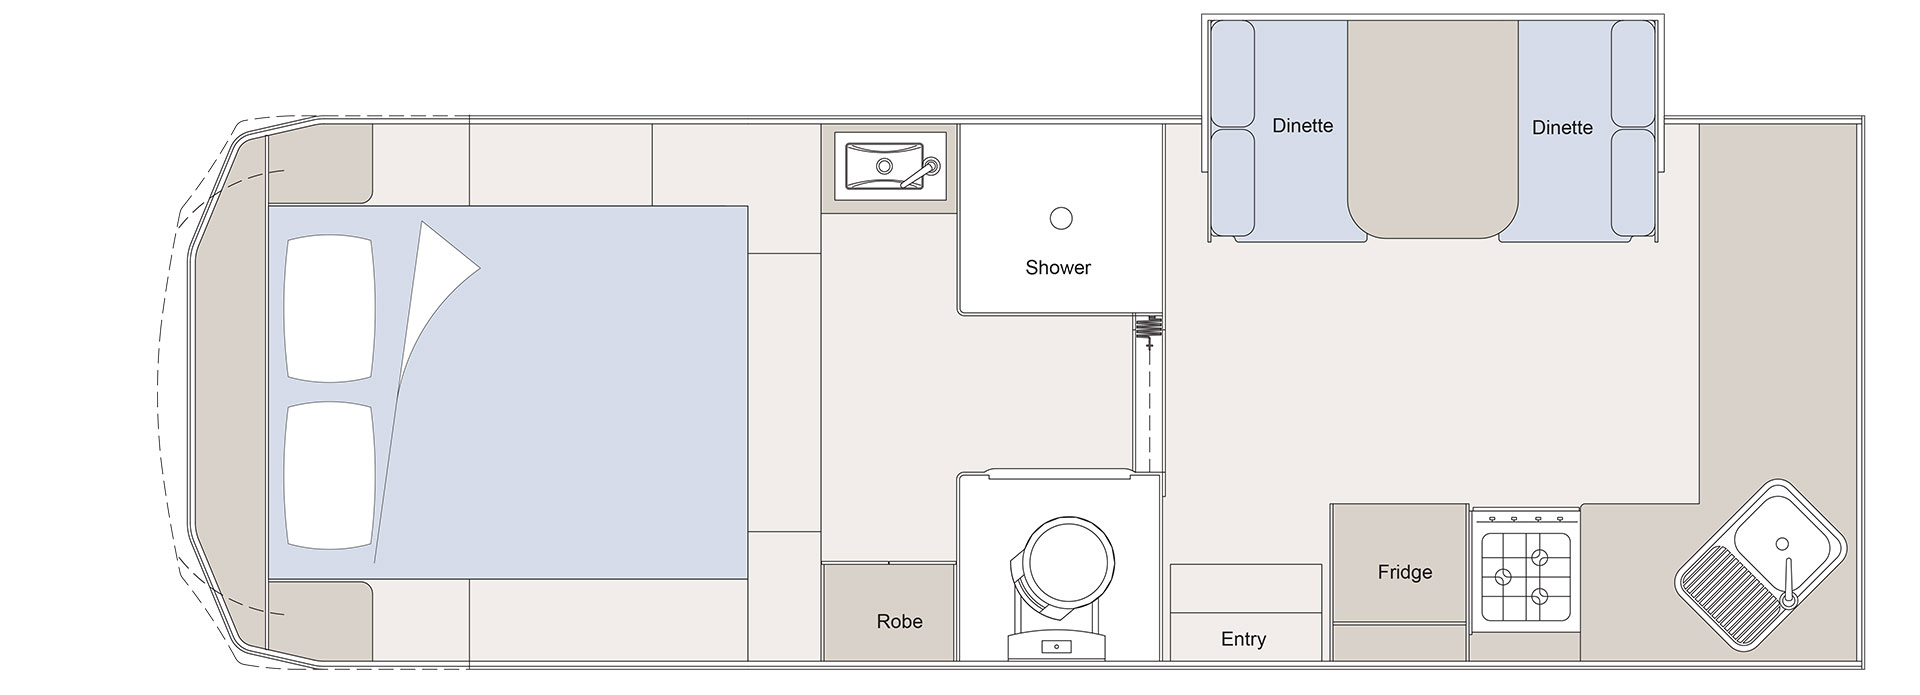 Sunliner Northshore Fifth Wheel layout